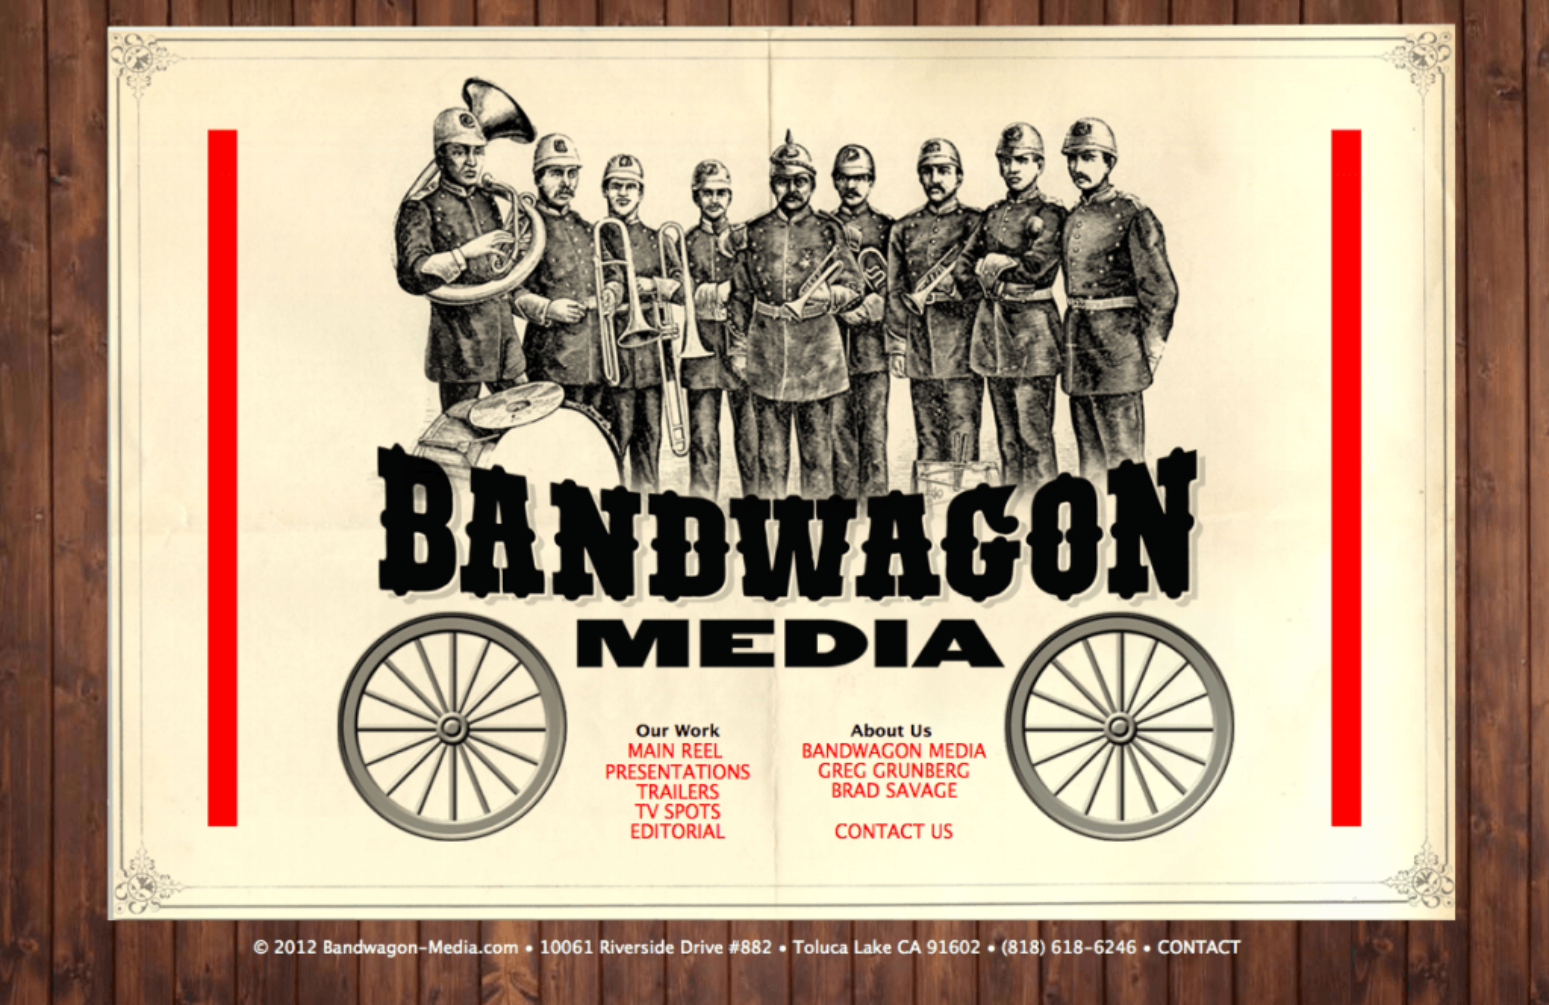 Bandwagon Media - Site development and design by Eric Scott / Day For Night.